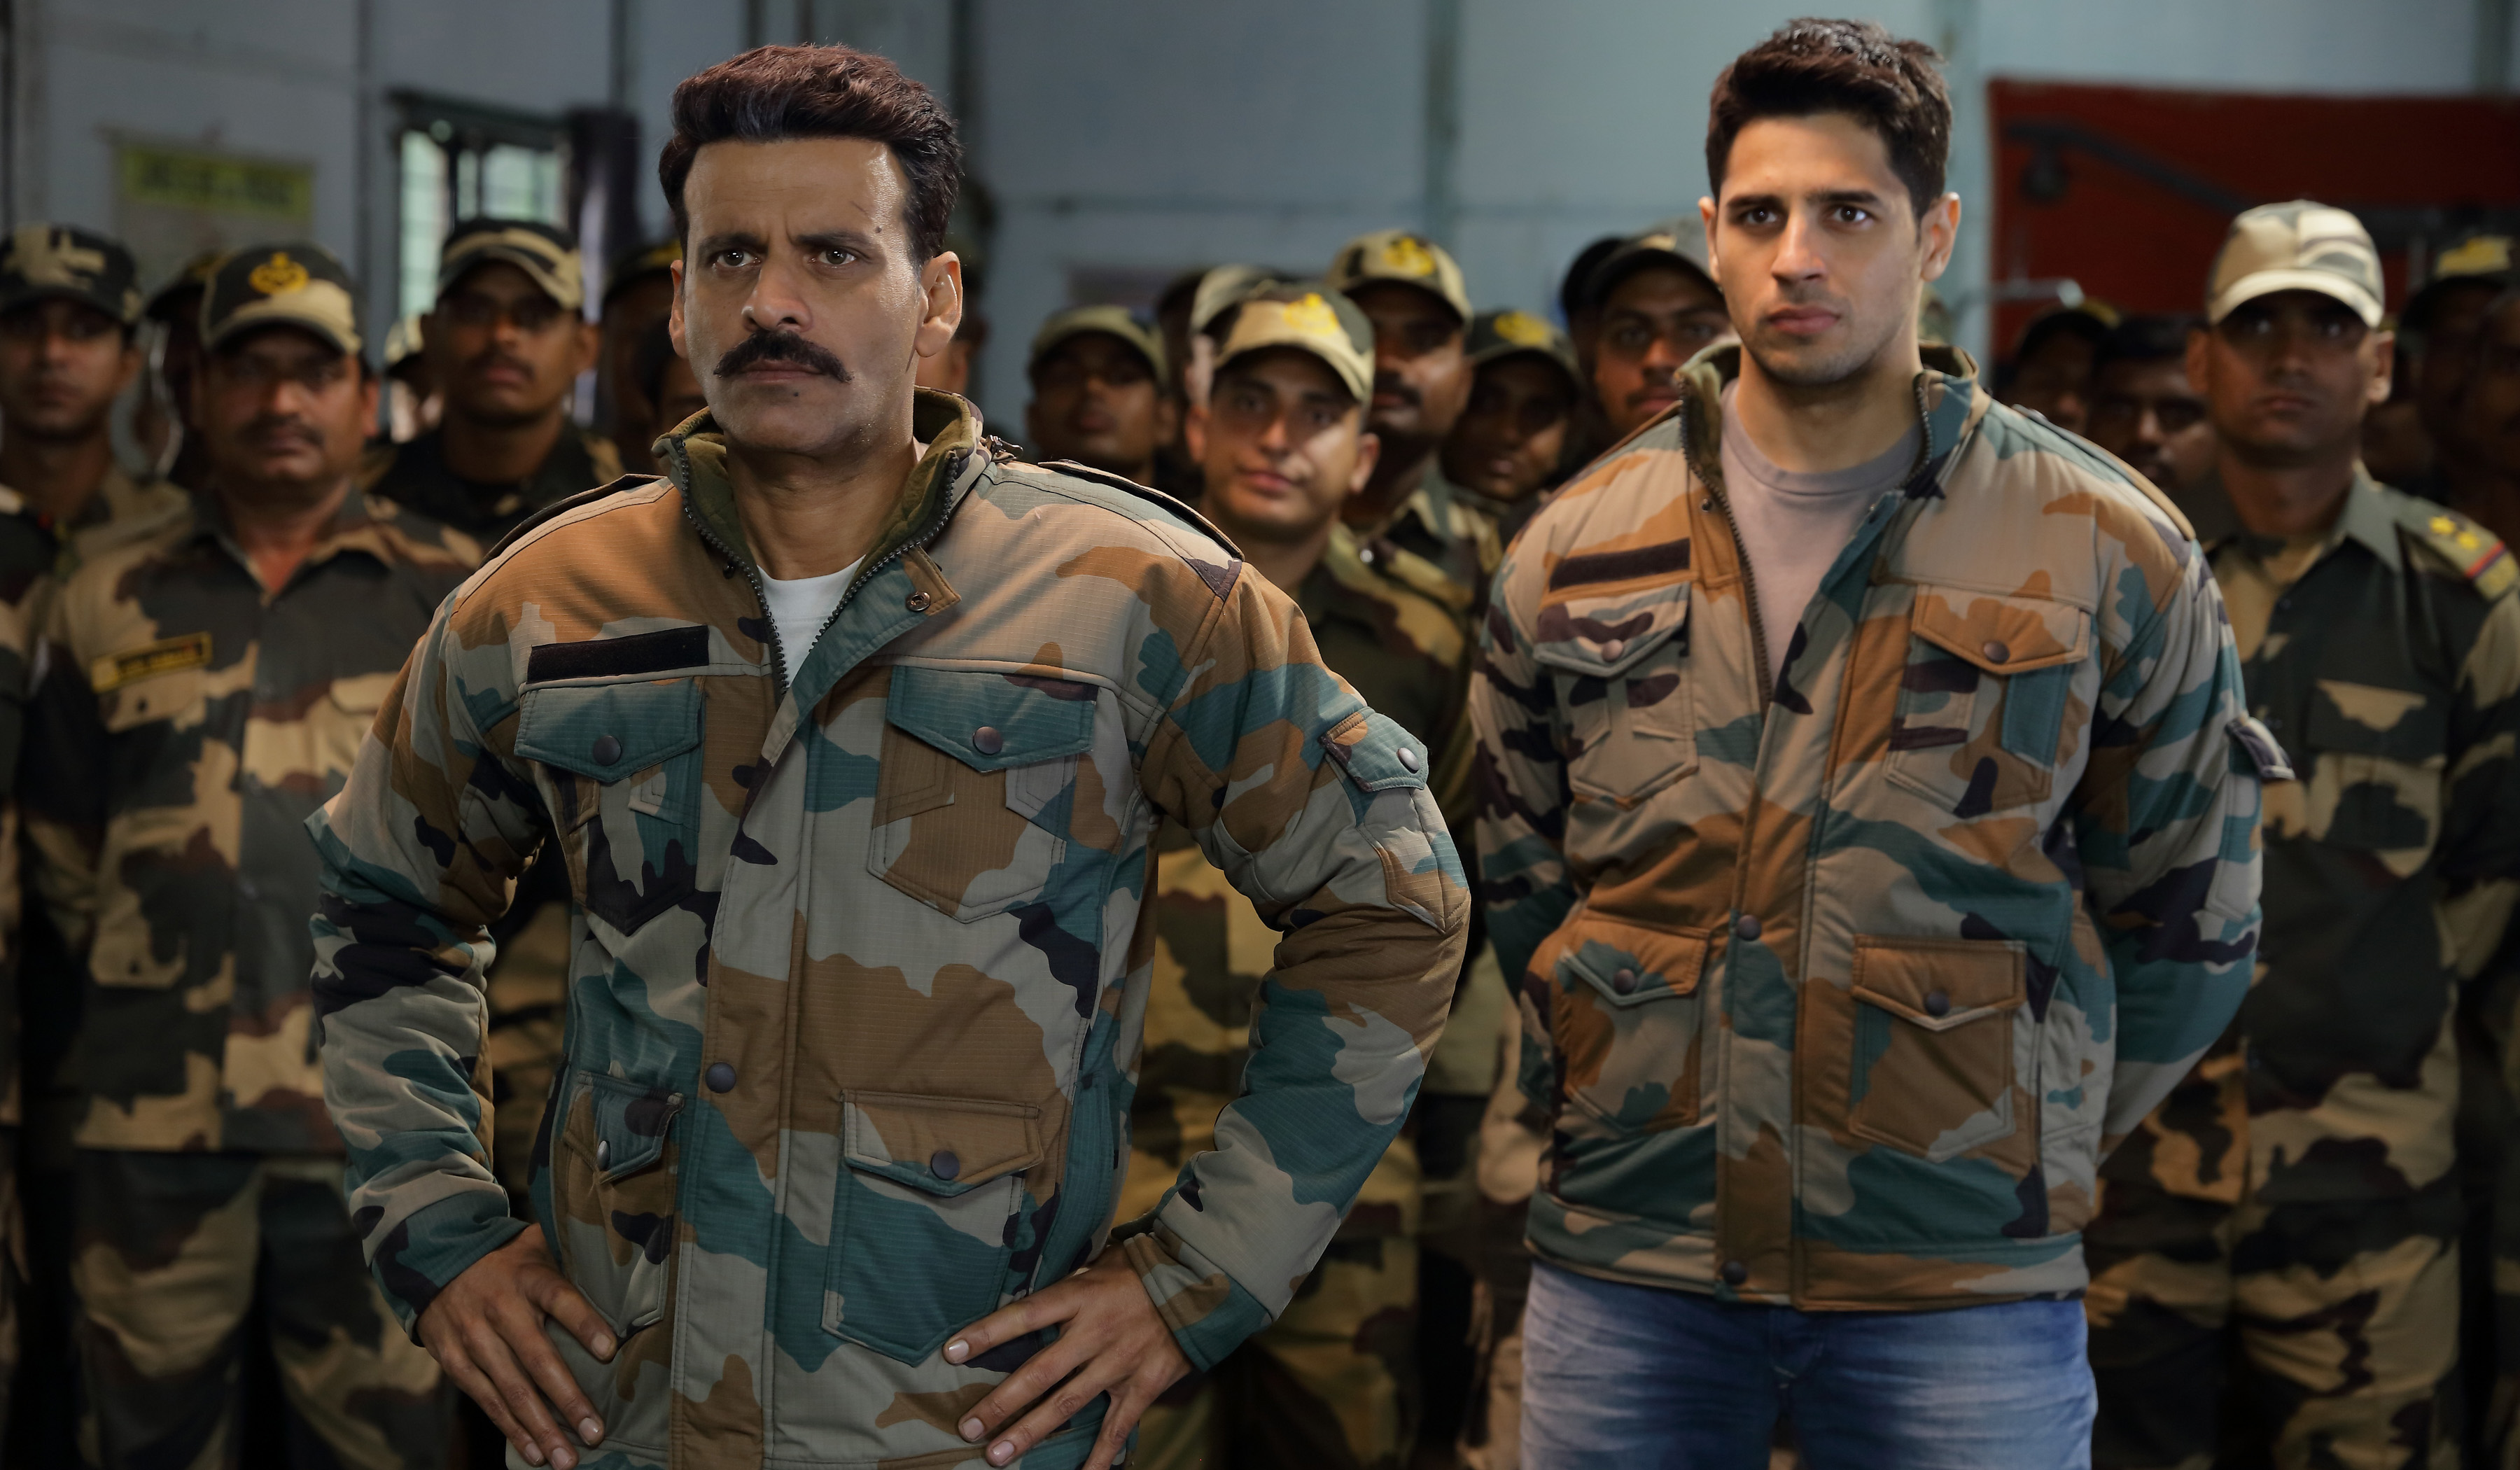 There is a confrontational scene between Manoj Bajpai and Sidharth Malhotra which has come out very well in the film.